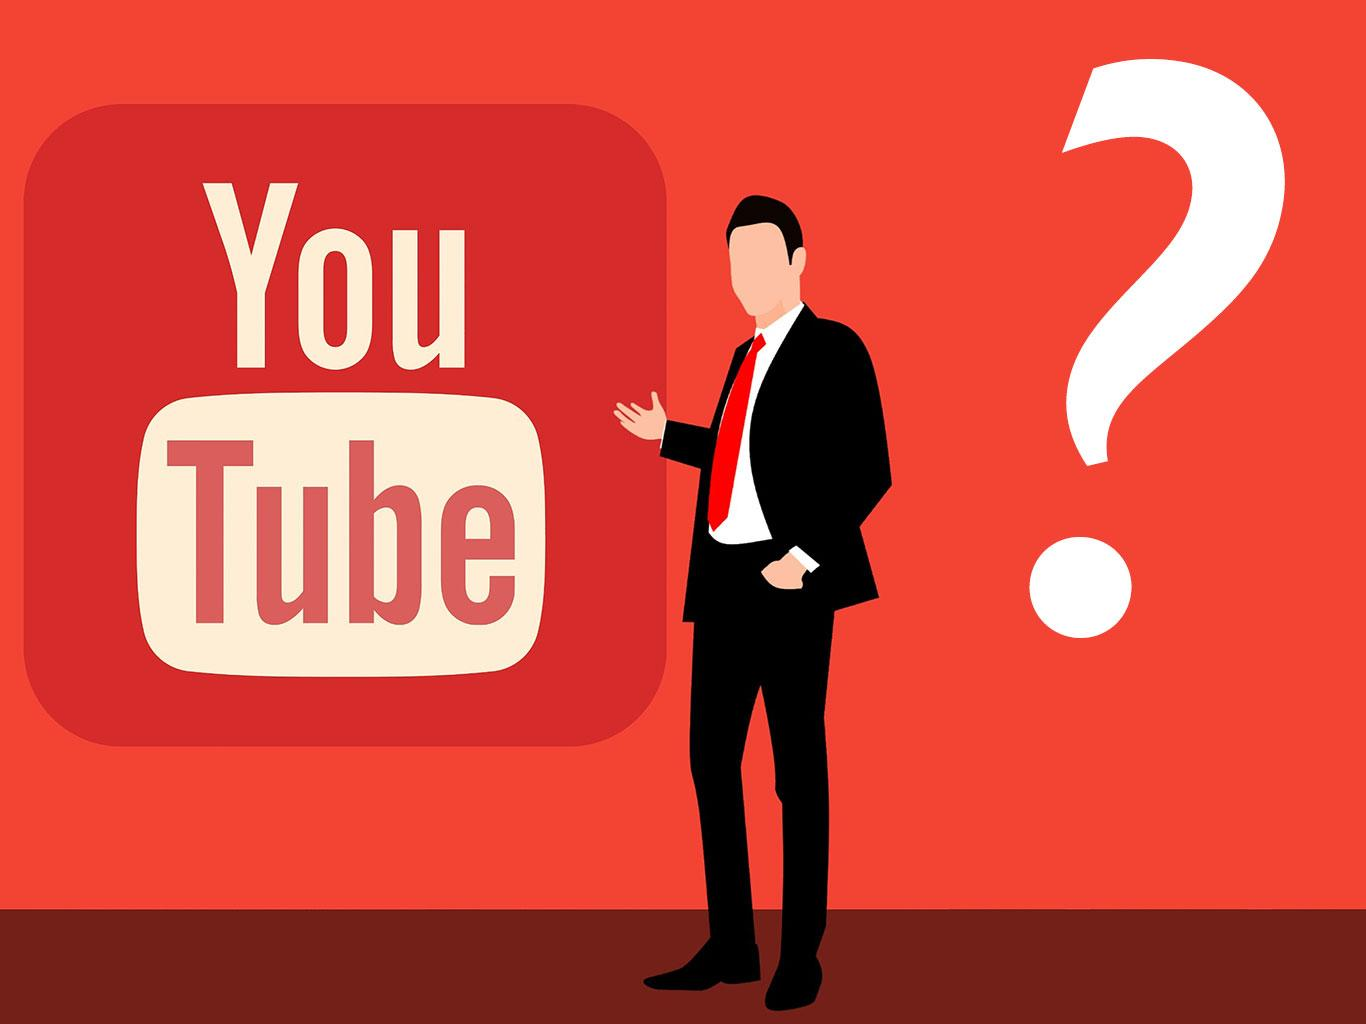 youtube logo in a red background and a suit guy with a interrogation mark next to him